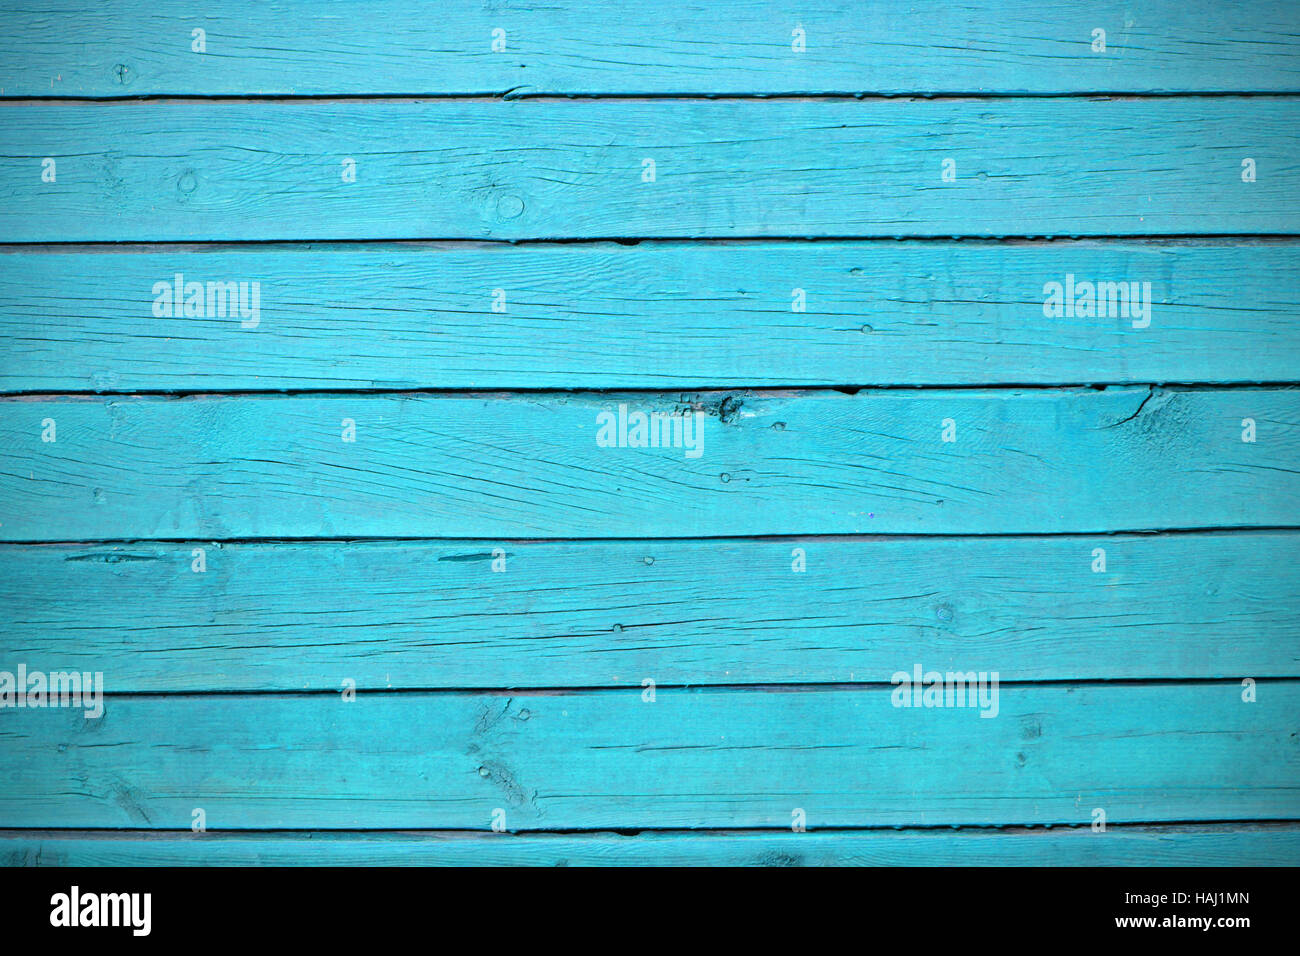 texture of blue wood planks - Stock Image